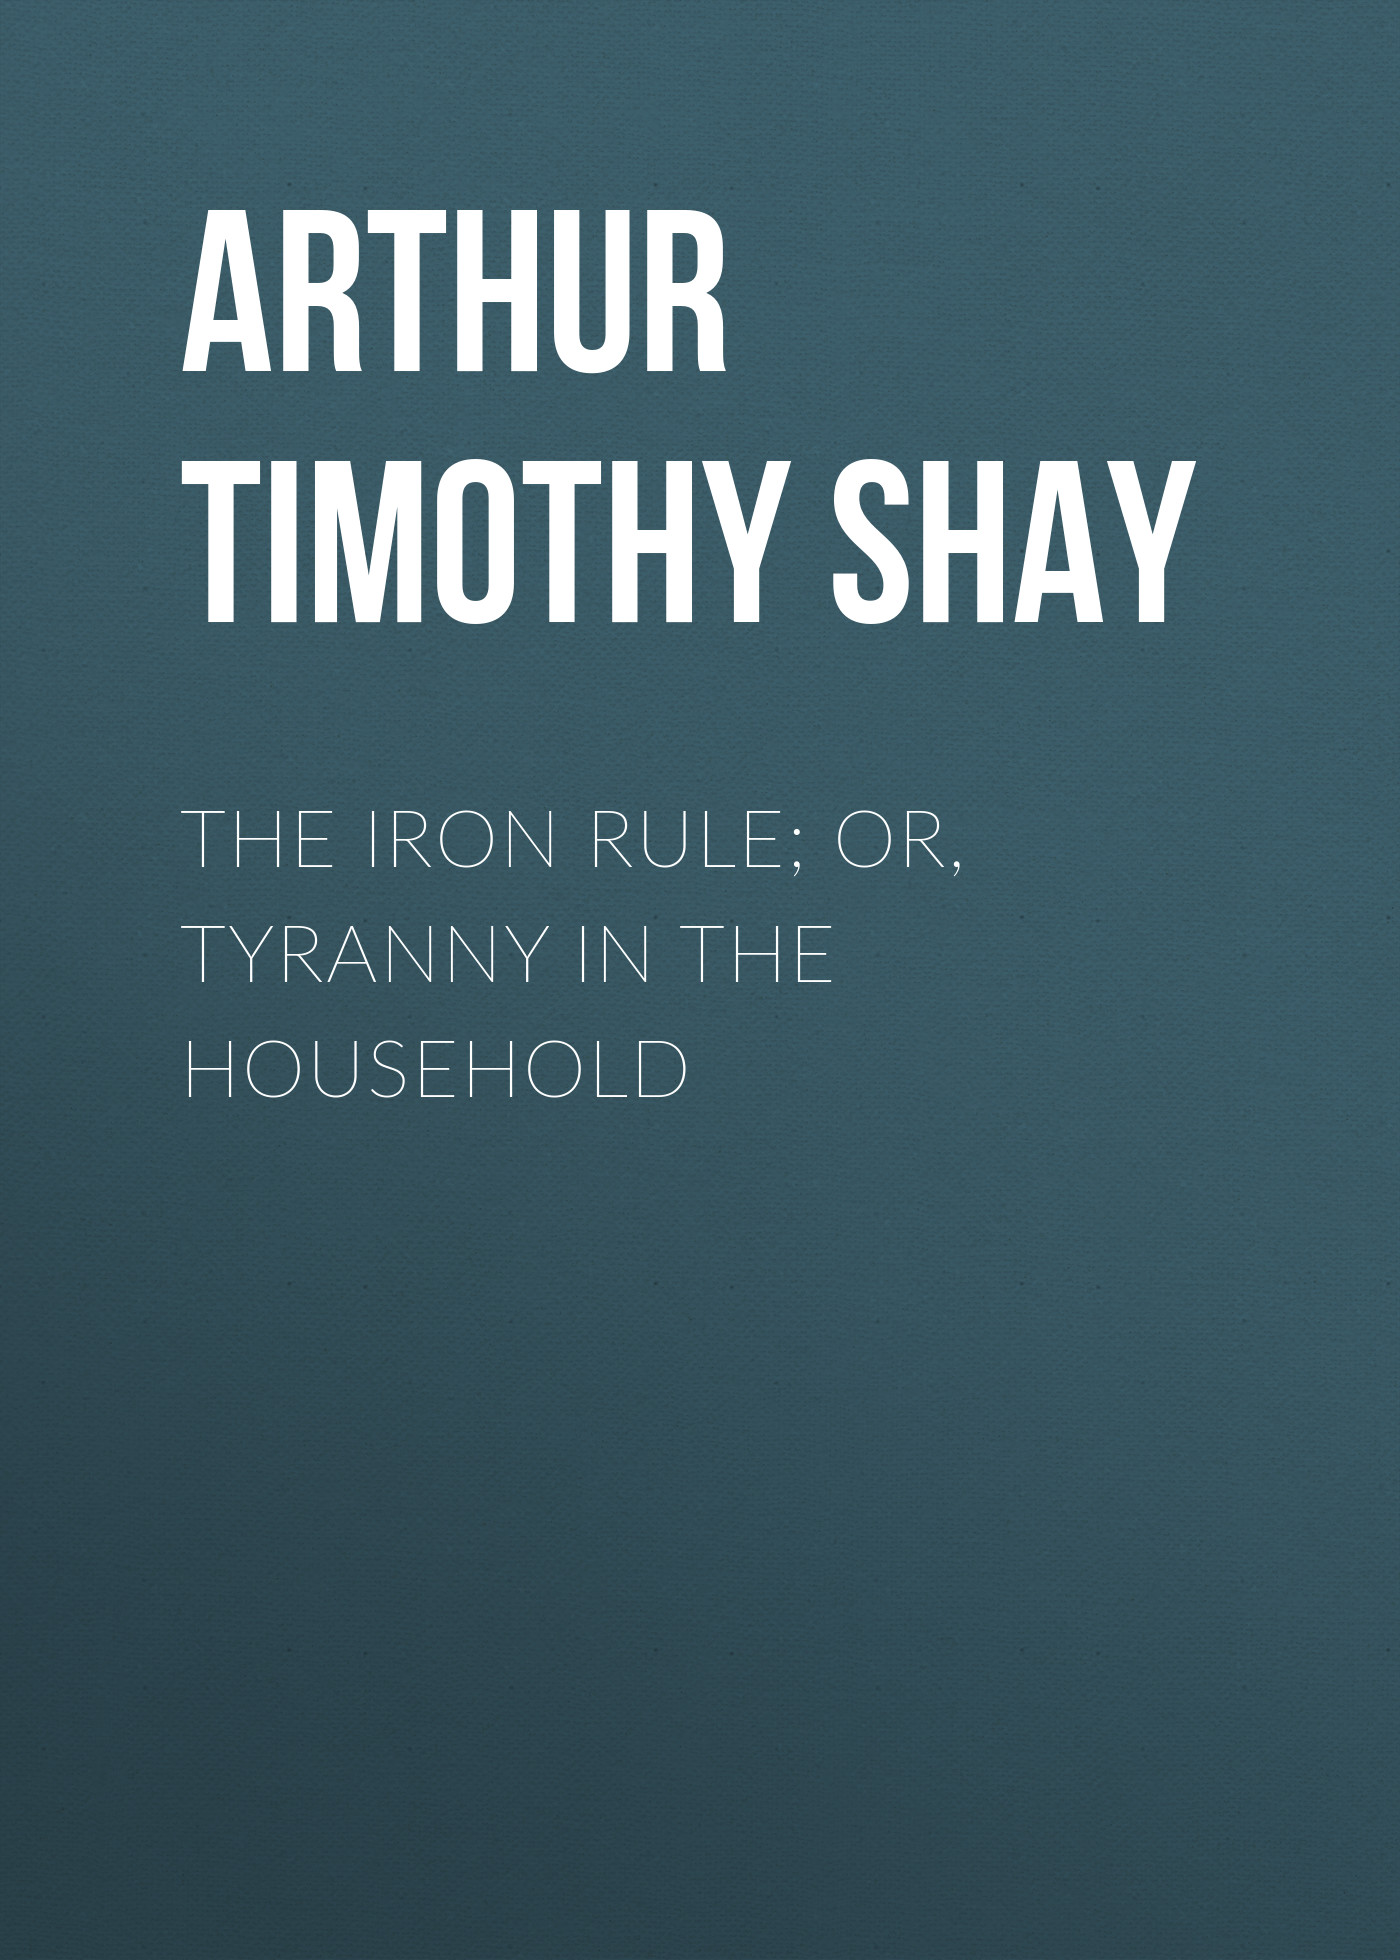 Arthur Timothy Shay The Iron Rule; Or, Tyranny in the Household arthur timothy shay woman s trials or tales and sketches from the life around us